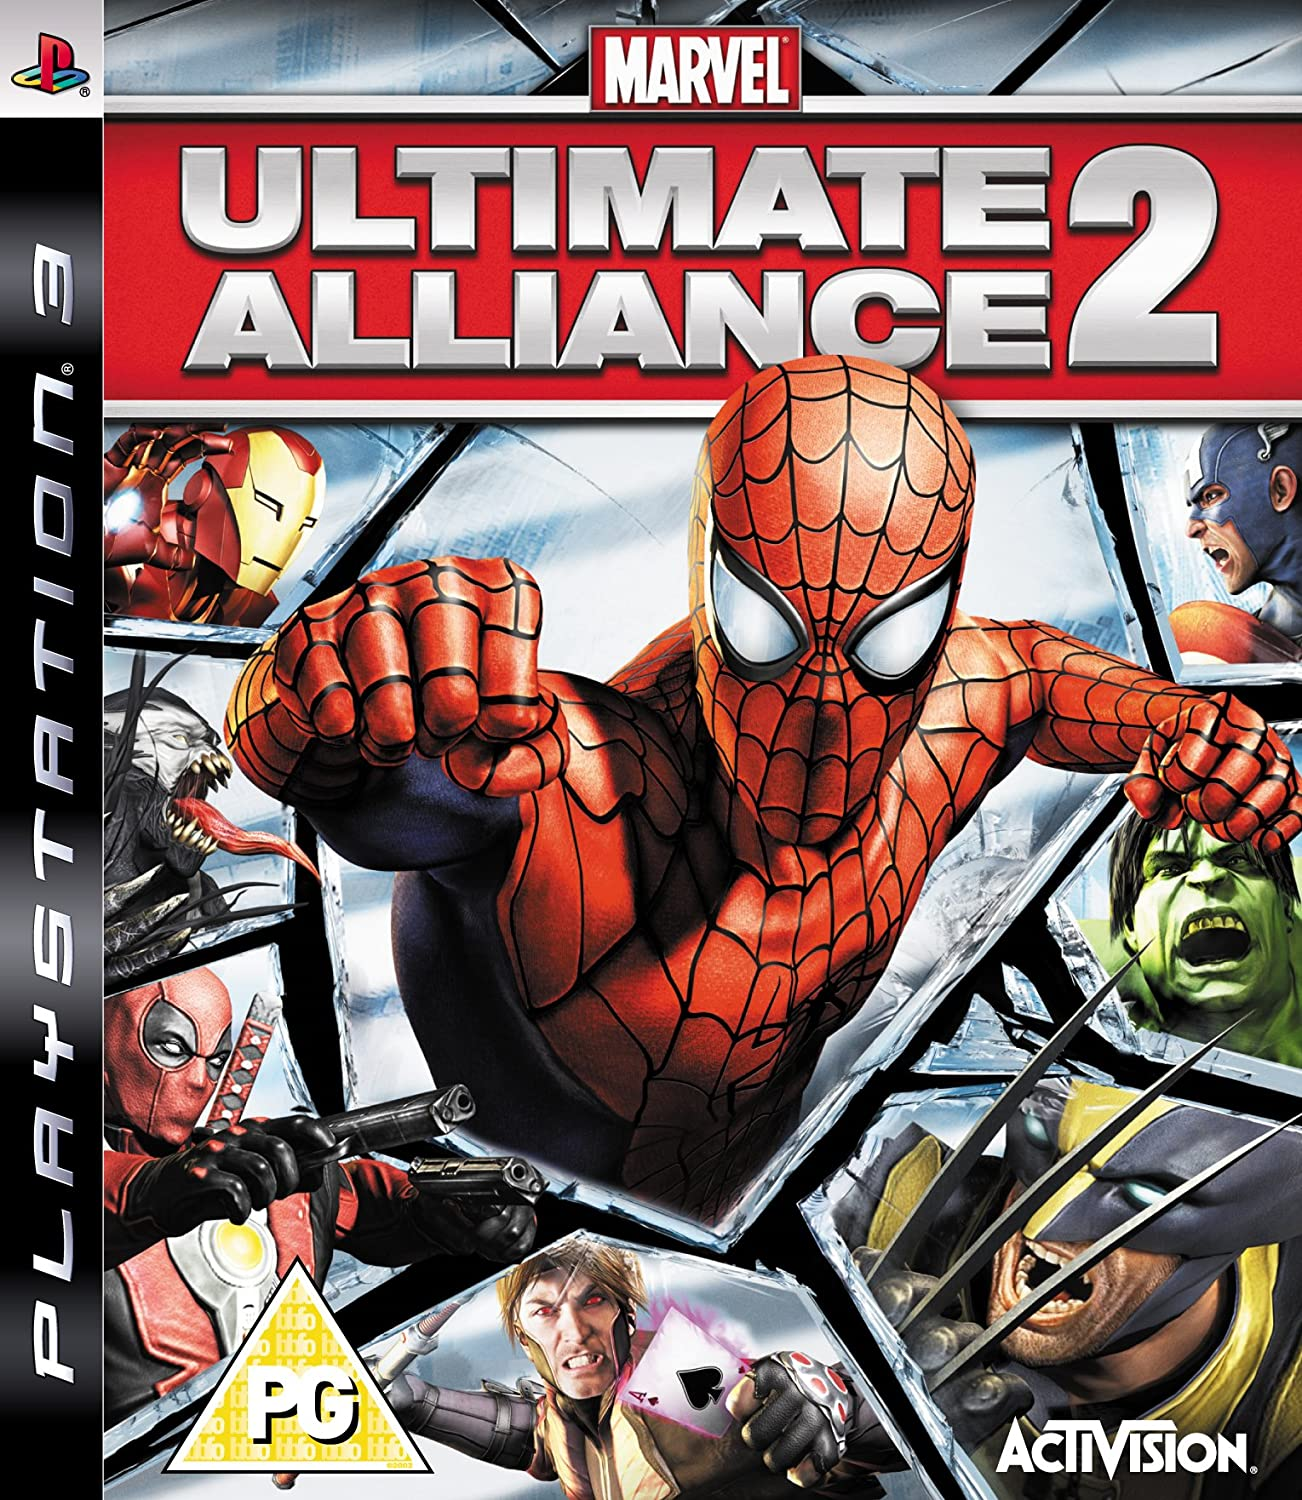 Marvel Ultimate Alliance 2 - PS3   Vicarious Visions. Programmeur